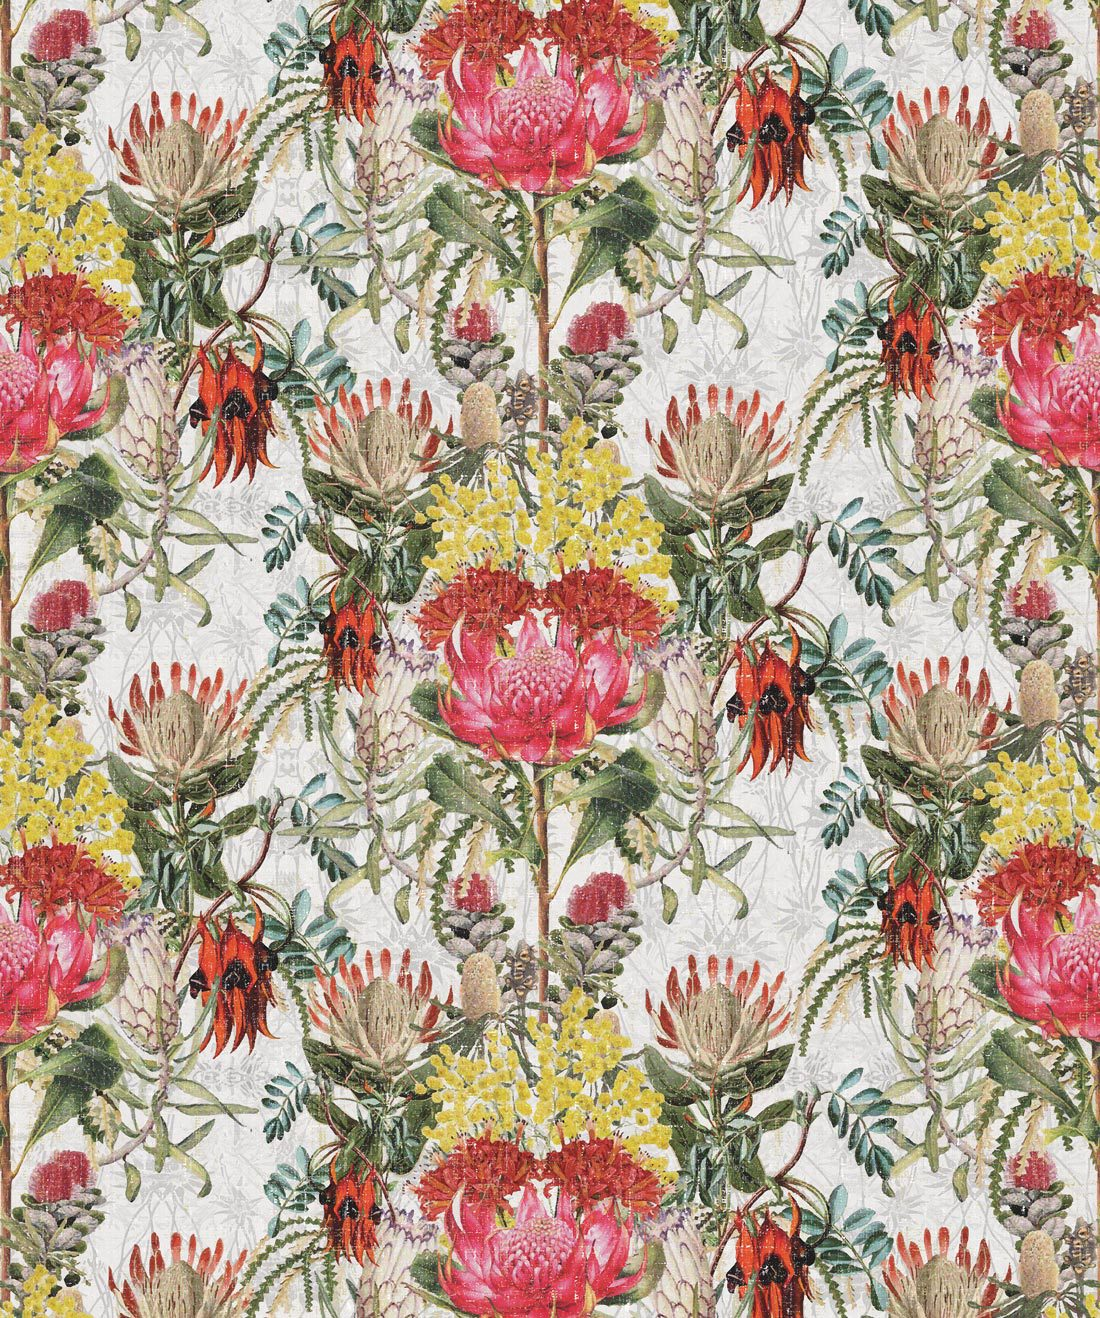 Simcox Wildflowers Original Wallpaper